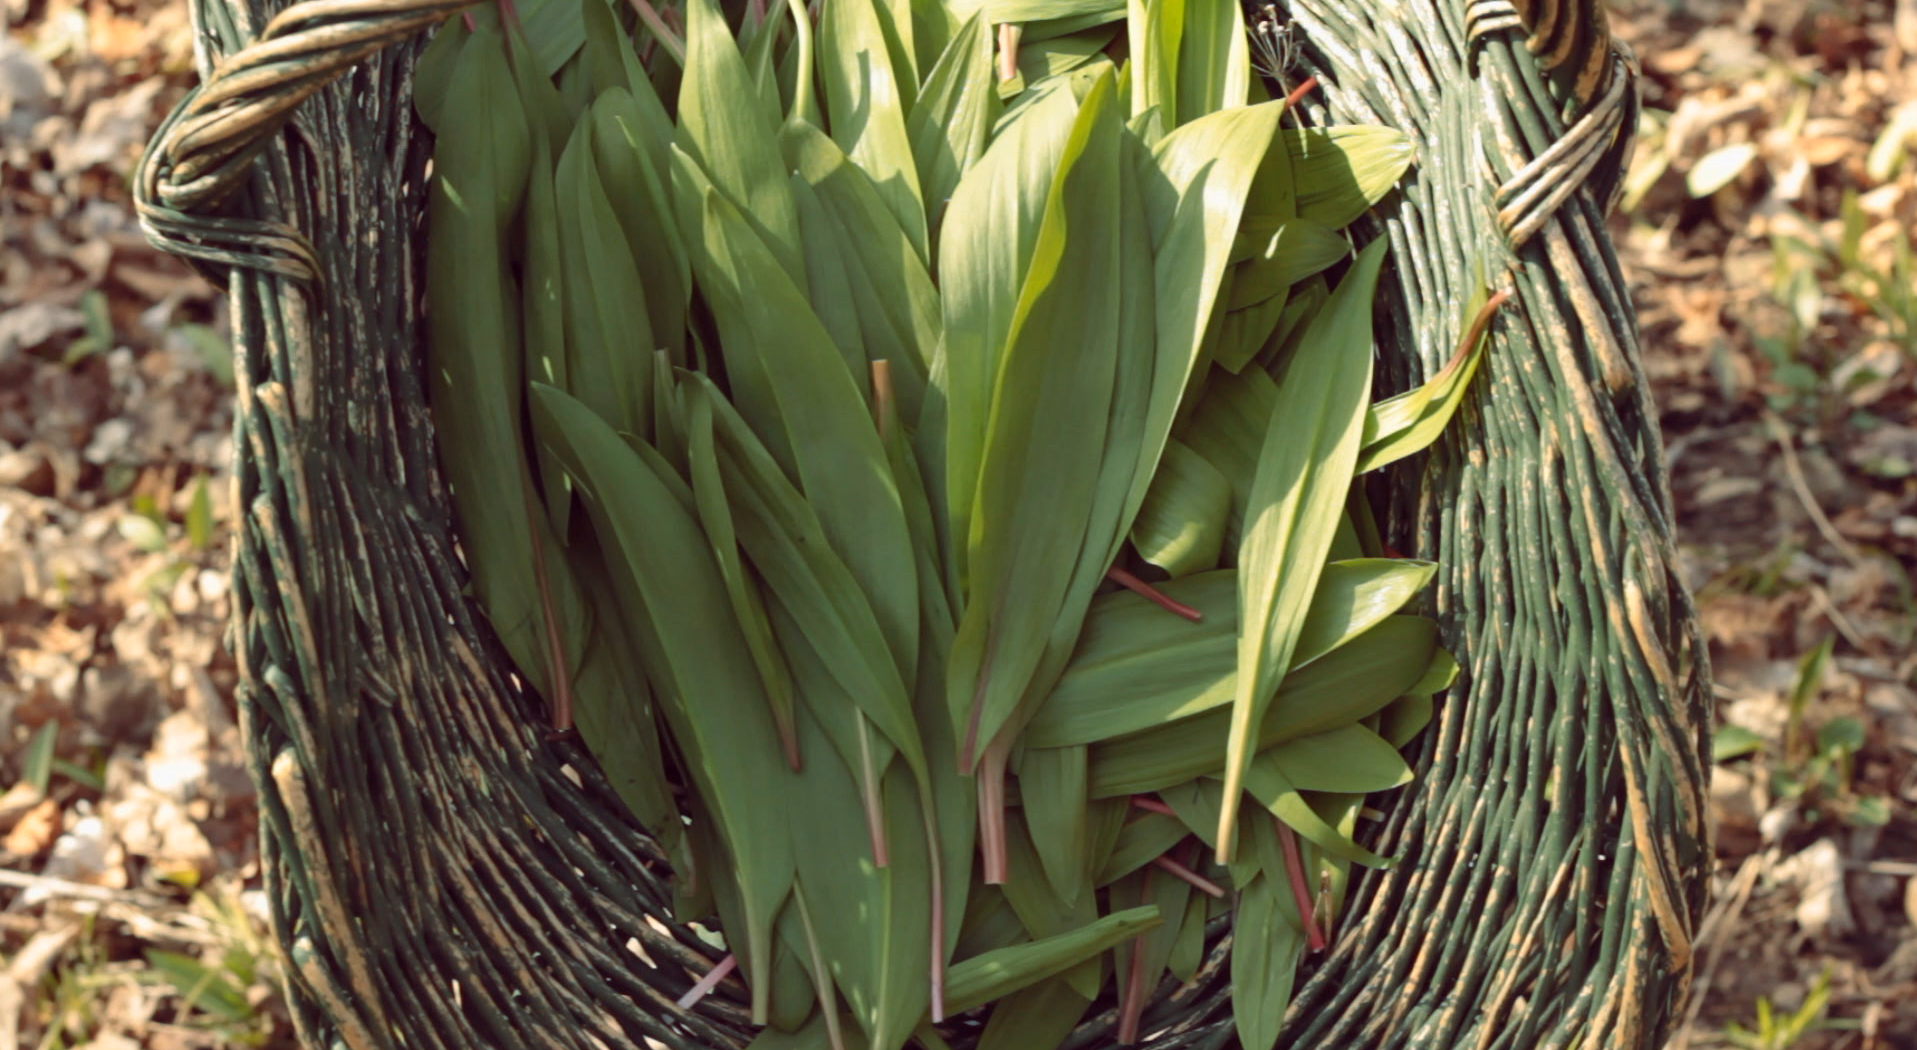 VIDEO: WILD LEEKS